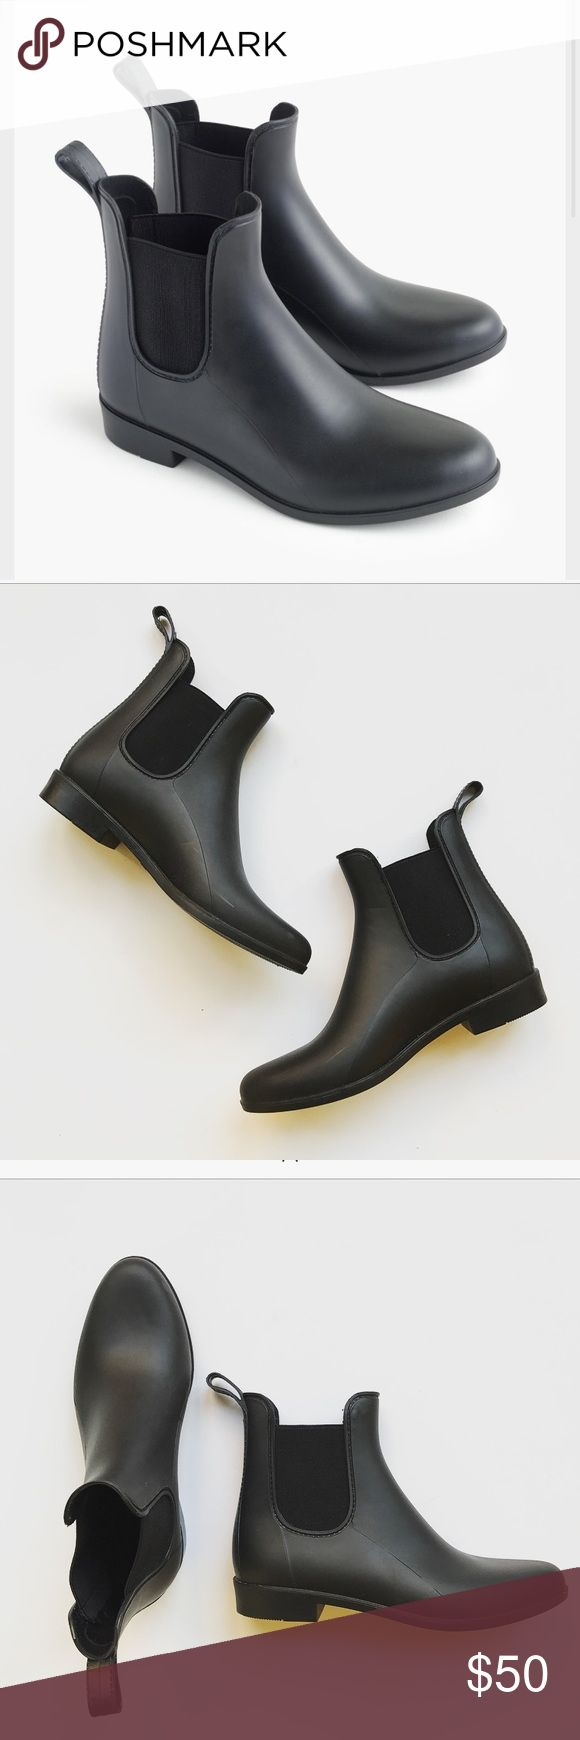 """J. Crew Chelsea Rain boots matte black Super cute pair of J. Crew Chelsea rain booties. Matte black. Perfect for upcoming fall season! So comfy and stylish! Size 8 but run 1/2 small. 1"""" heel. New without box. No trades! J. Crew Shoes Winter & Rain Boots"""